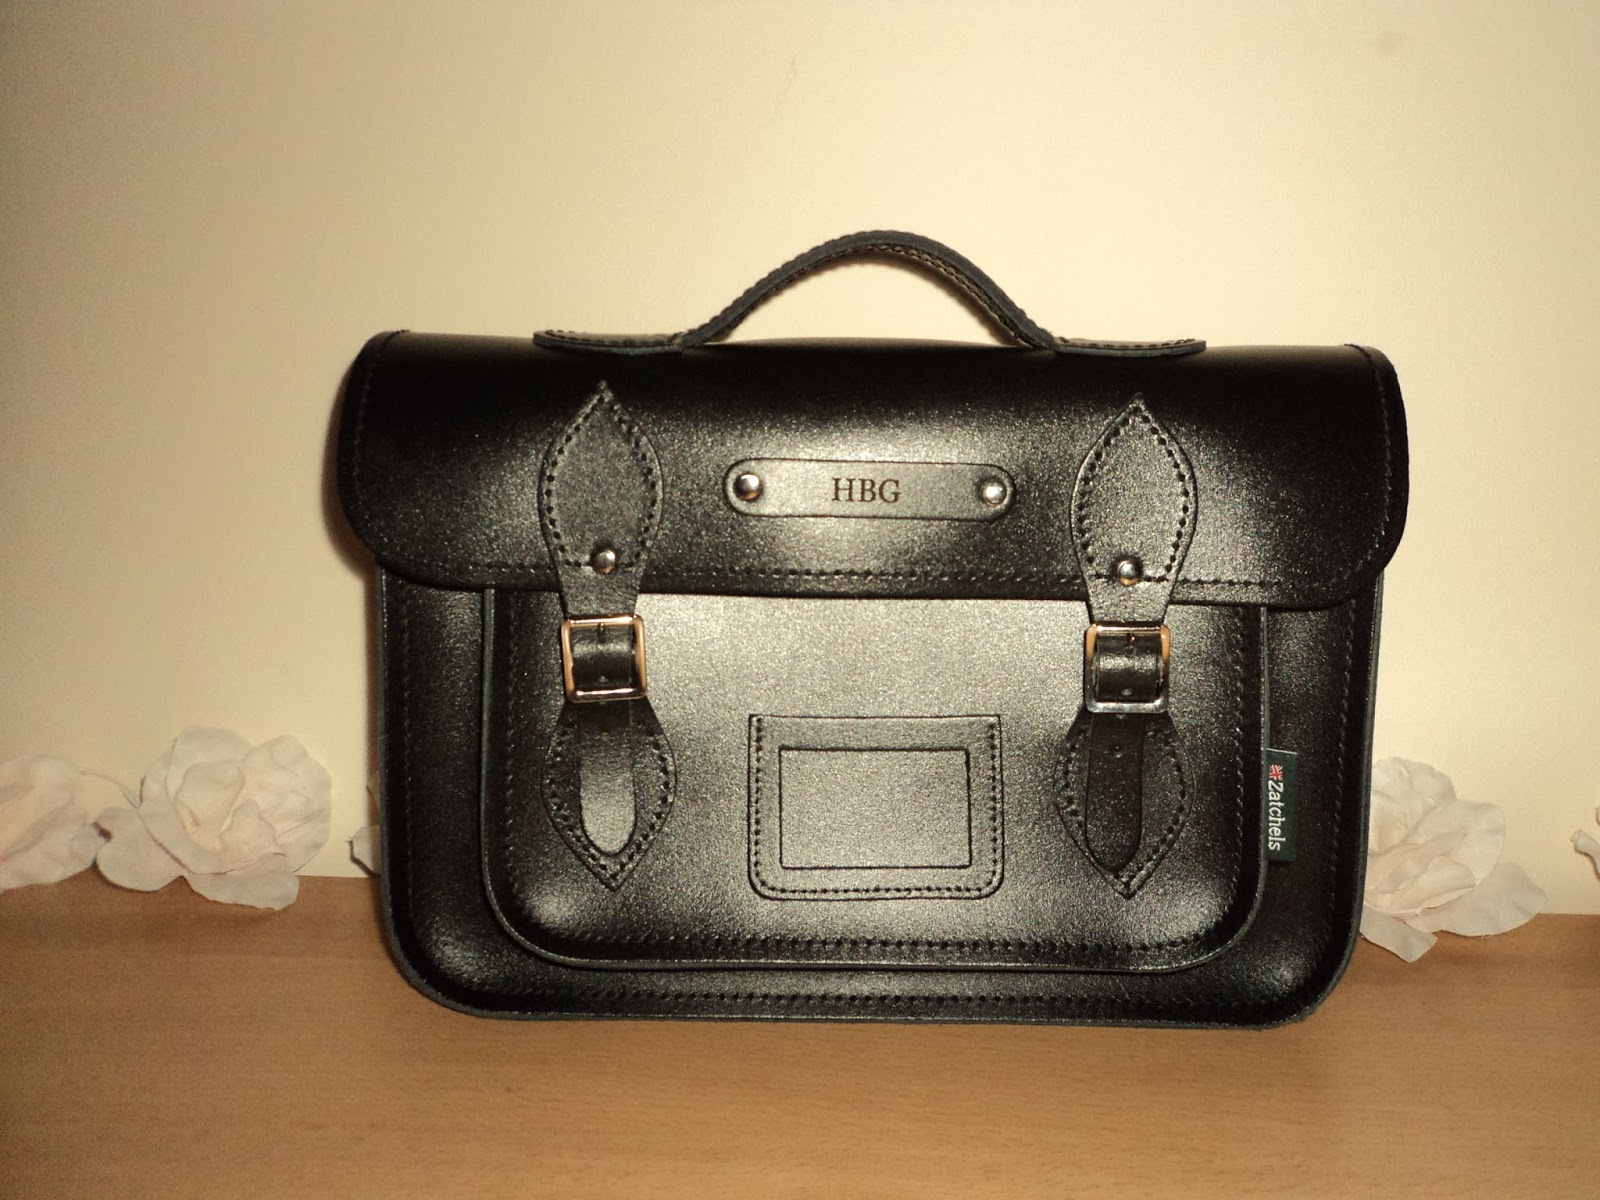 Zatchels Customised Satchel Bag Review